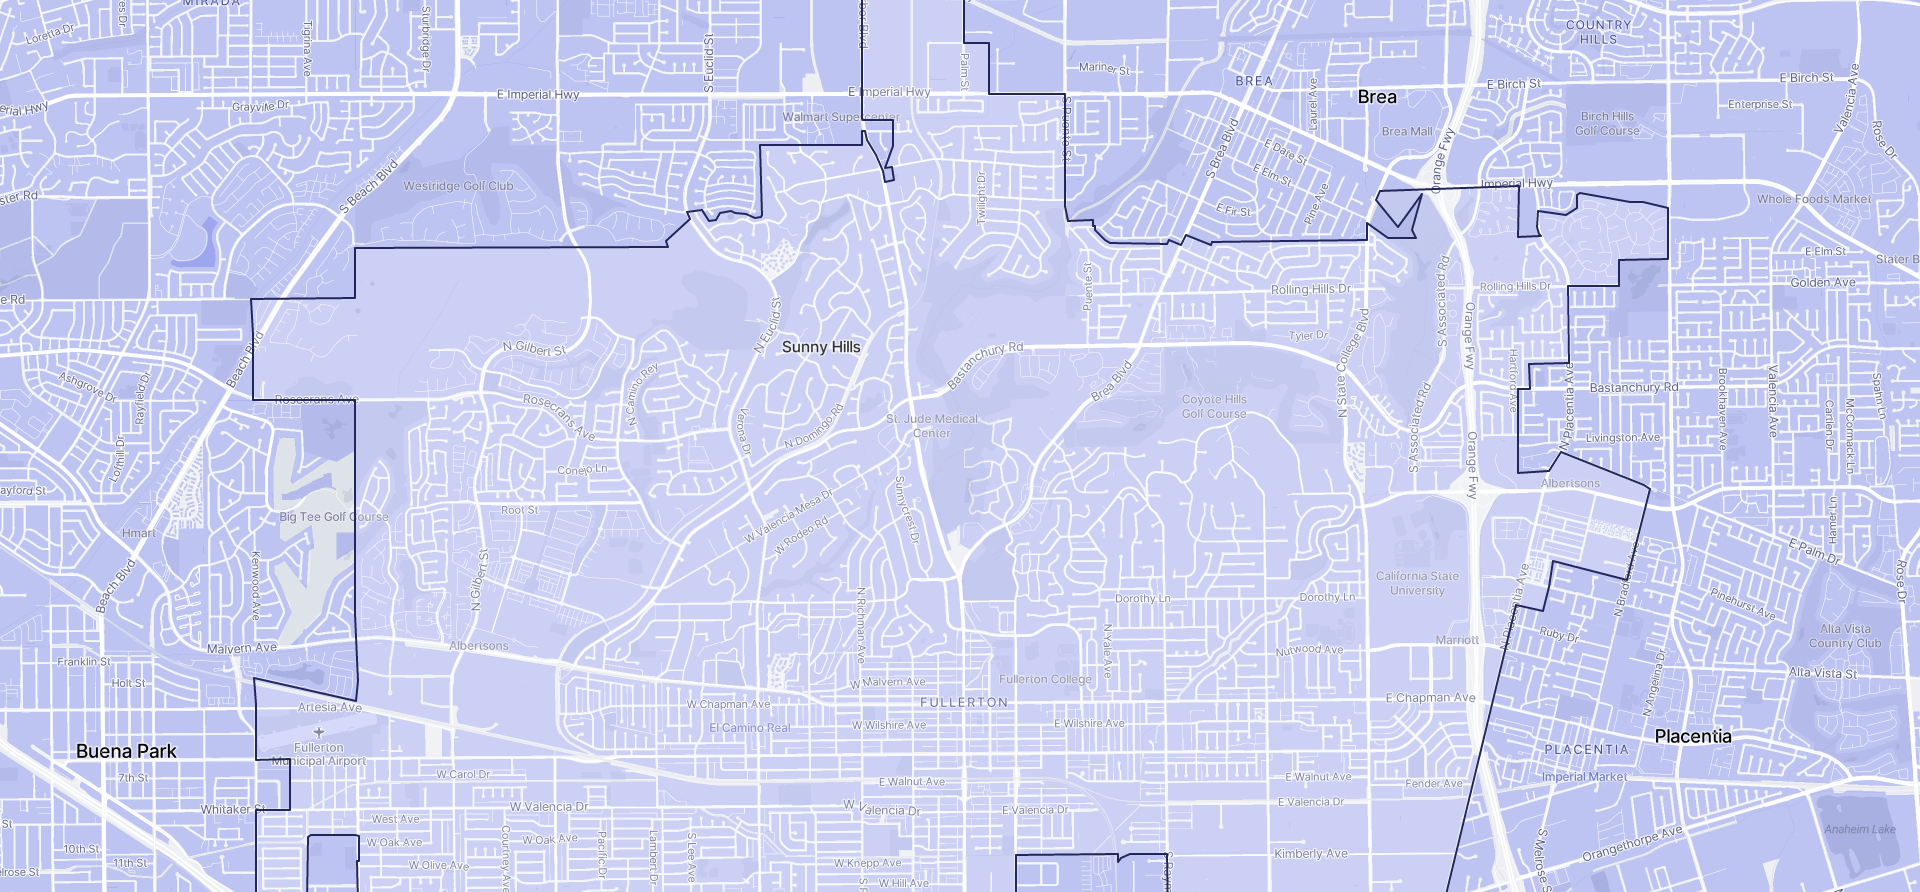 Image of Fullerton boundaries on a map.